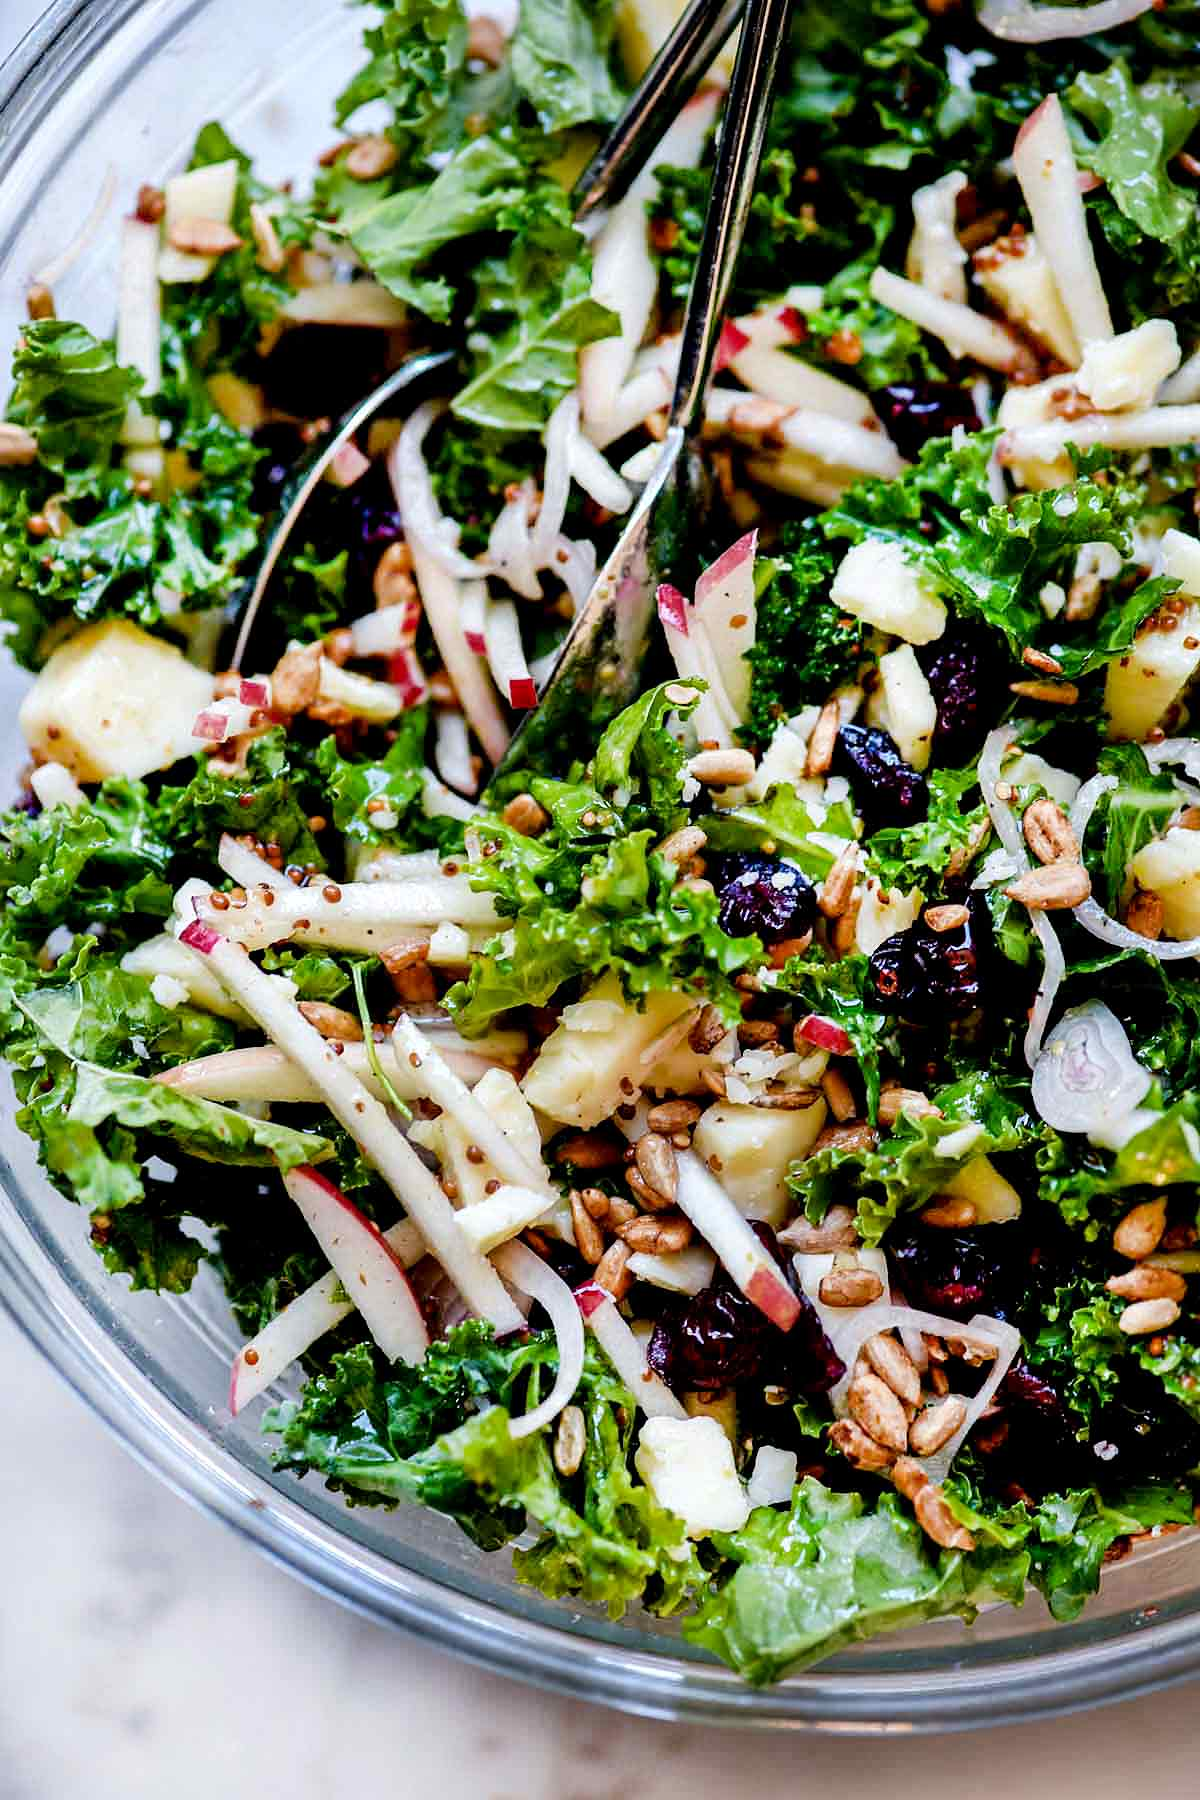 Kale Salad with Cranberries, Apple, and Cheddar Cheese